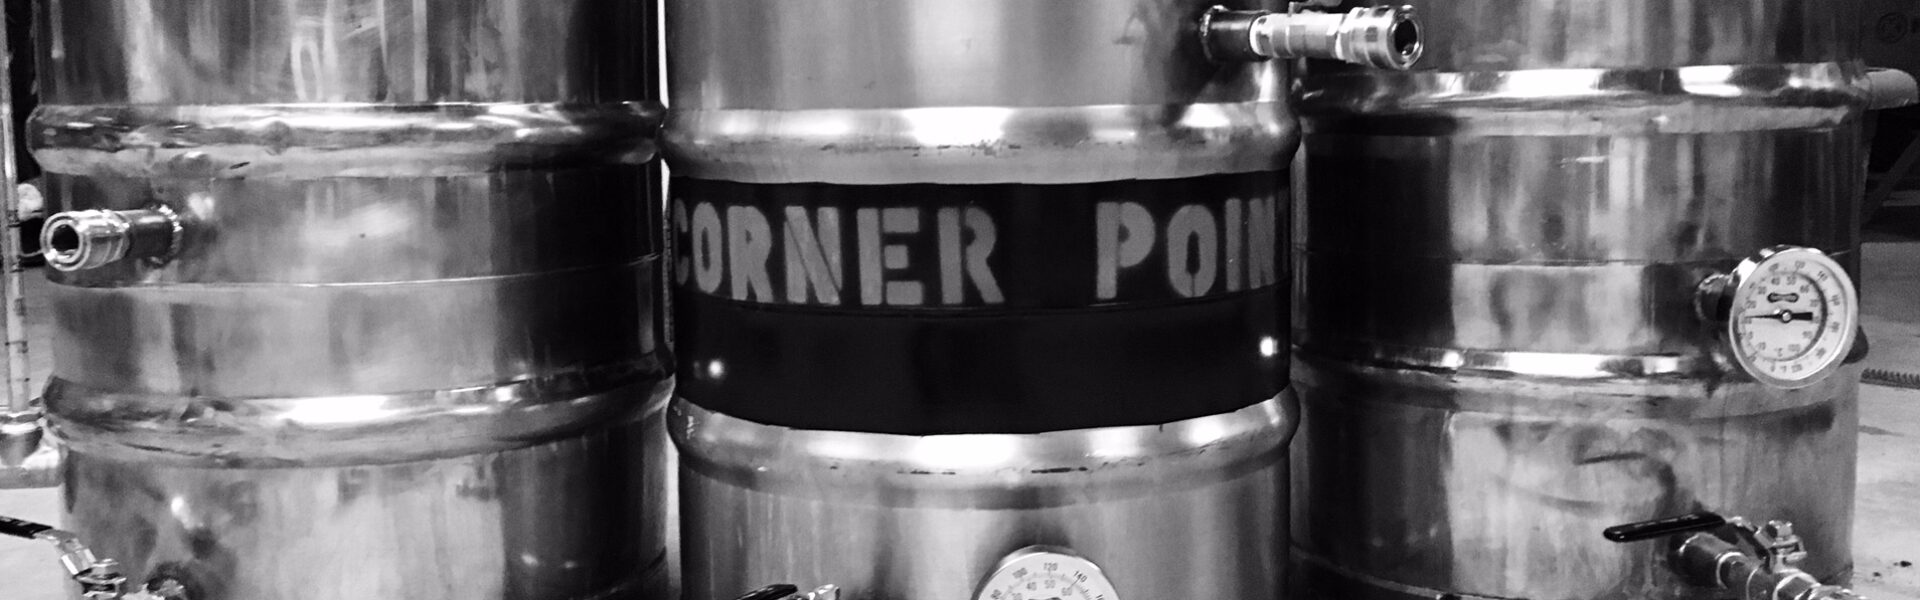 Corner Point Brewing Company